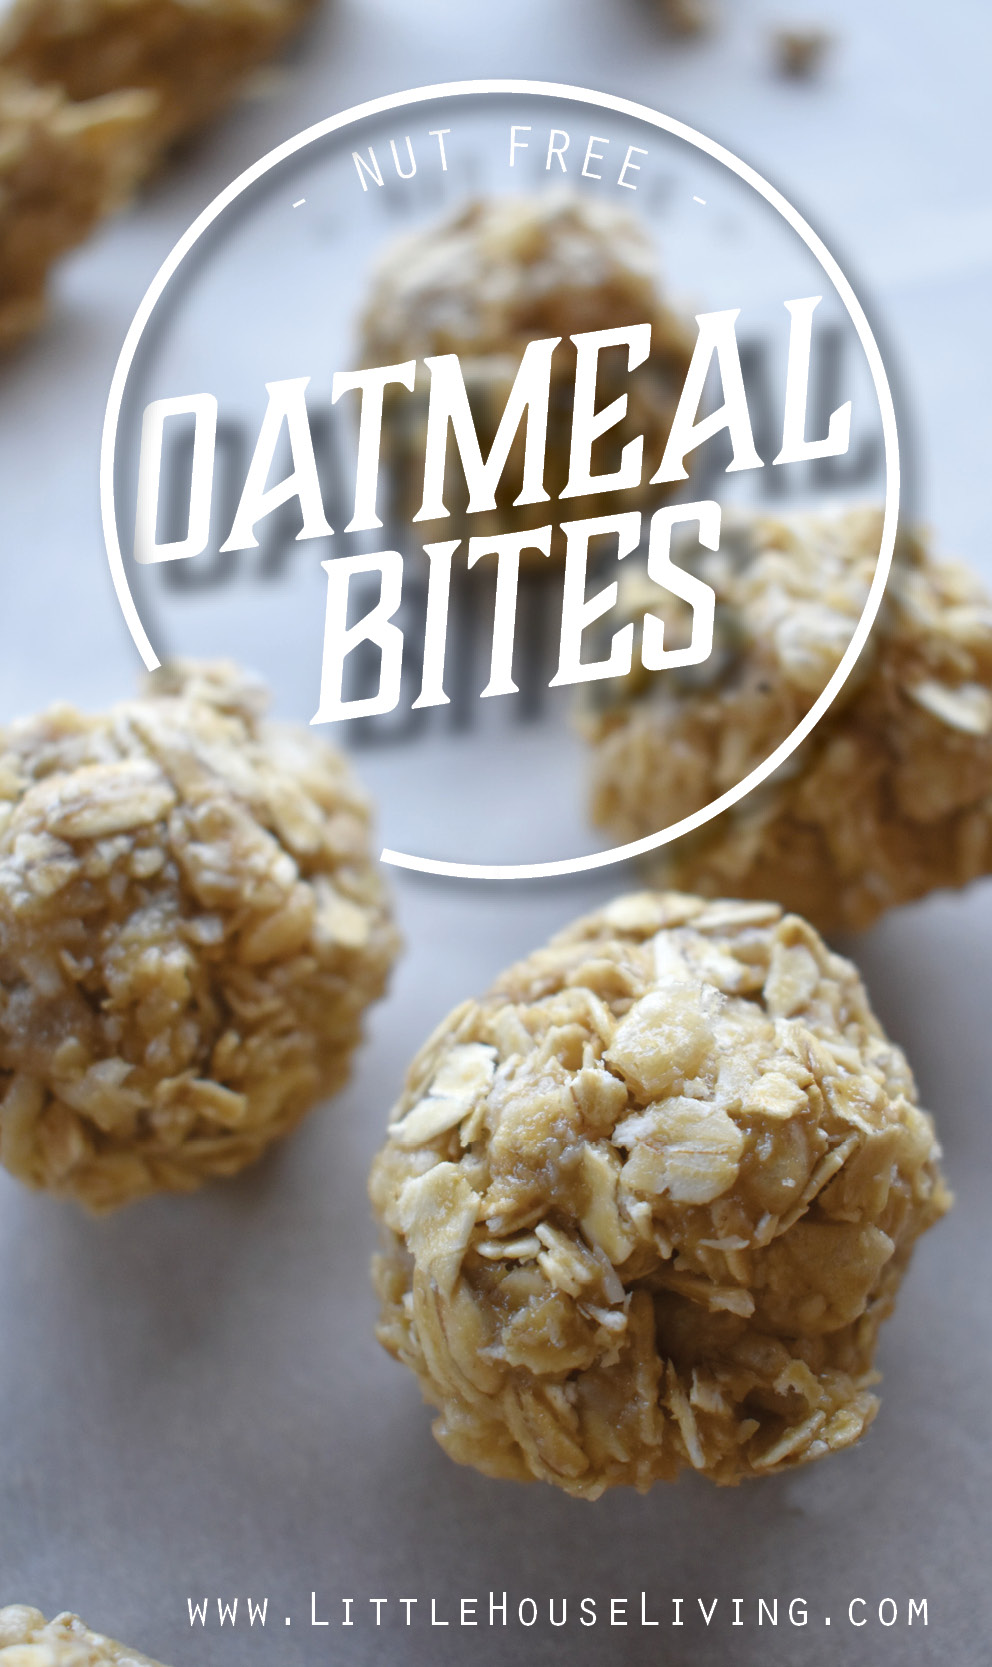 Your entire family will love these little no nut Oatmeal Bite recipe, plus this recipe includes a free printable kids recipe so that you can make it together! #kidsrecipe #homeschool #kidscooking #protein #healthyrecipes #easyrecipes #snackrecipes